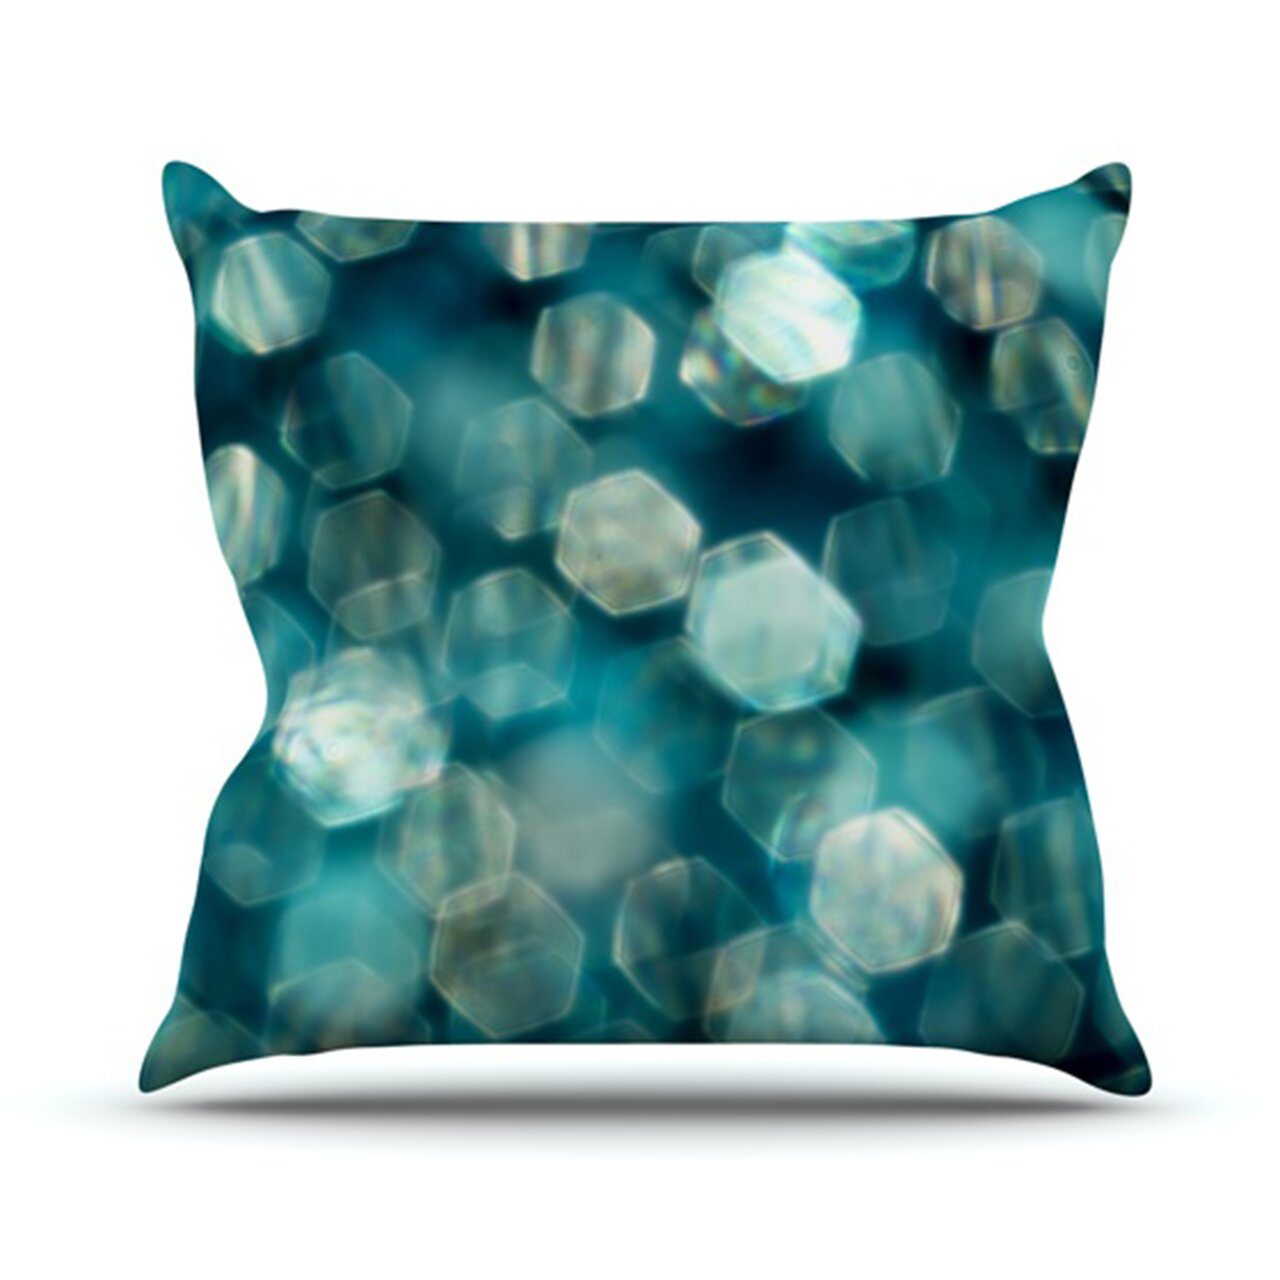 Throw Pillow Fight Viewing Guide Answers : KESS InHouse Shades Throw Pillow & Reviews Wayfair